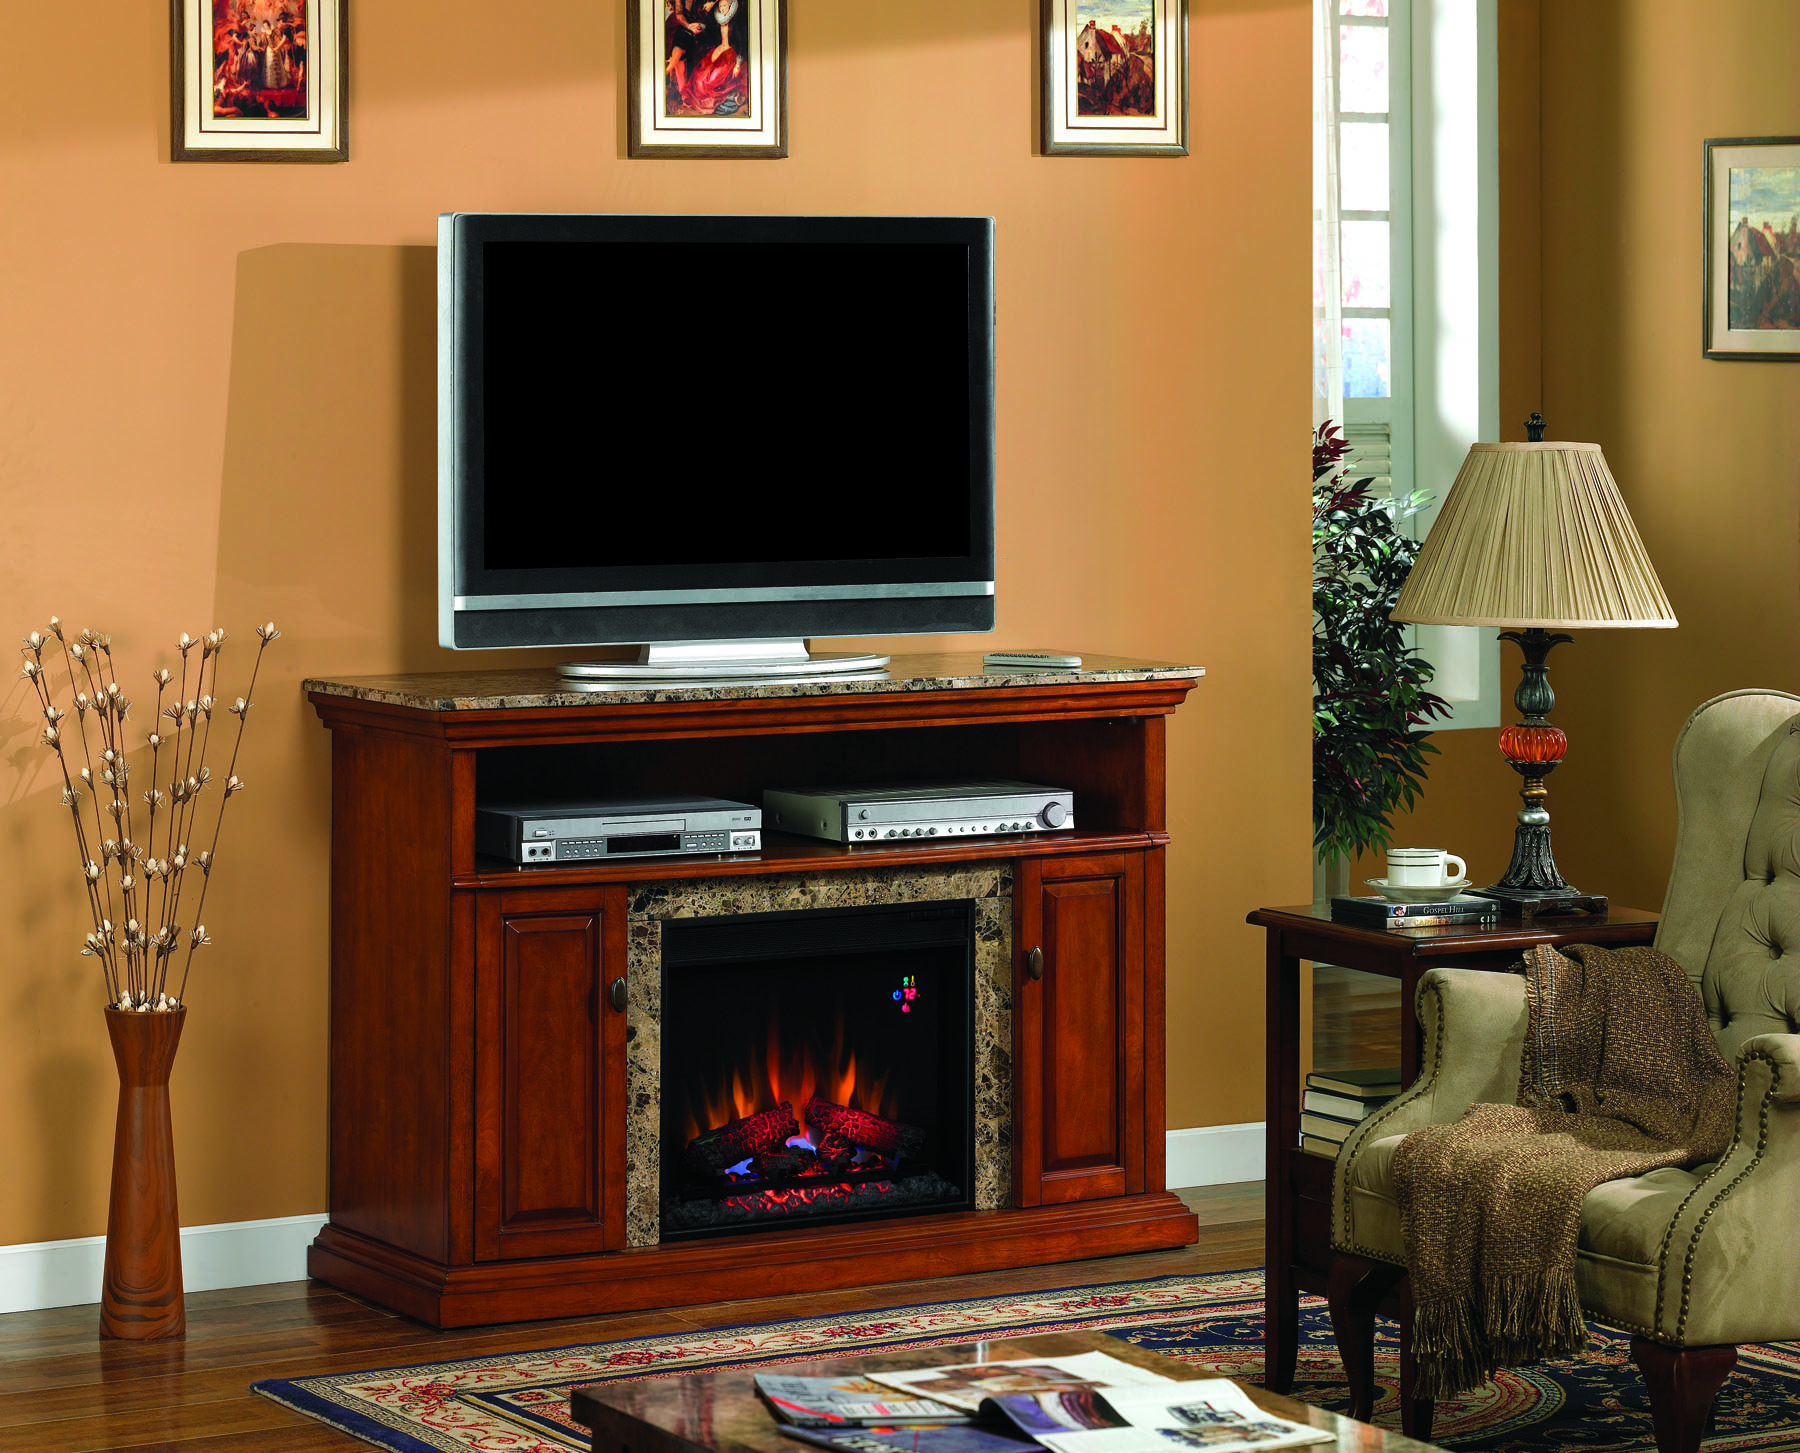 The  Briteton Golden Honey Marble Entertainment Center Electric Fireplace brings together amazing craftsmanship of woodworking and marble in this excellent entertainment center piece.  Featuring a real marble top and surrounding mantel